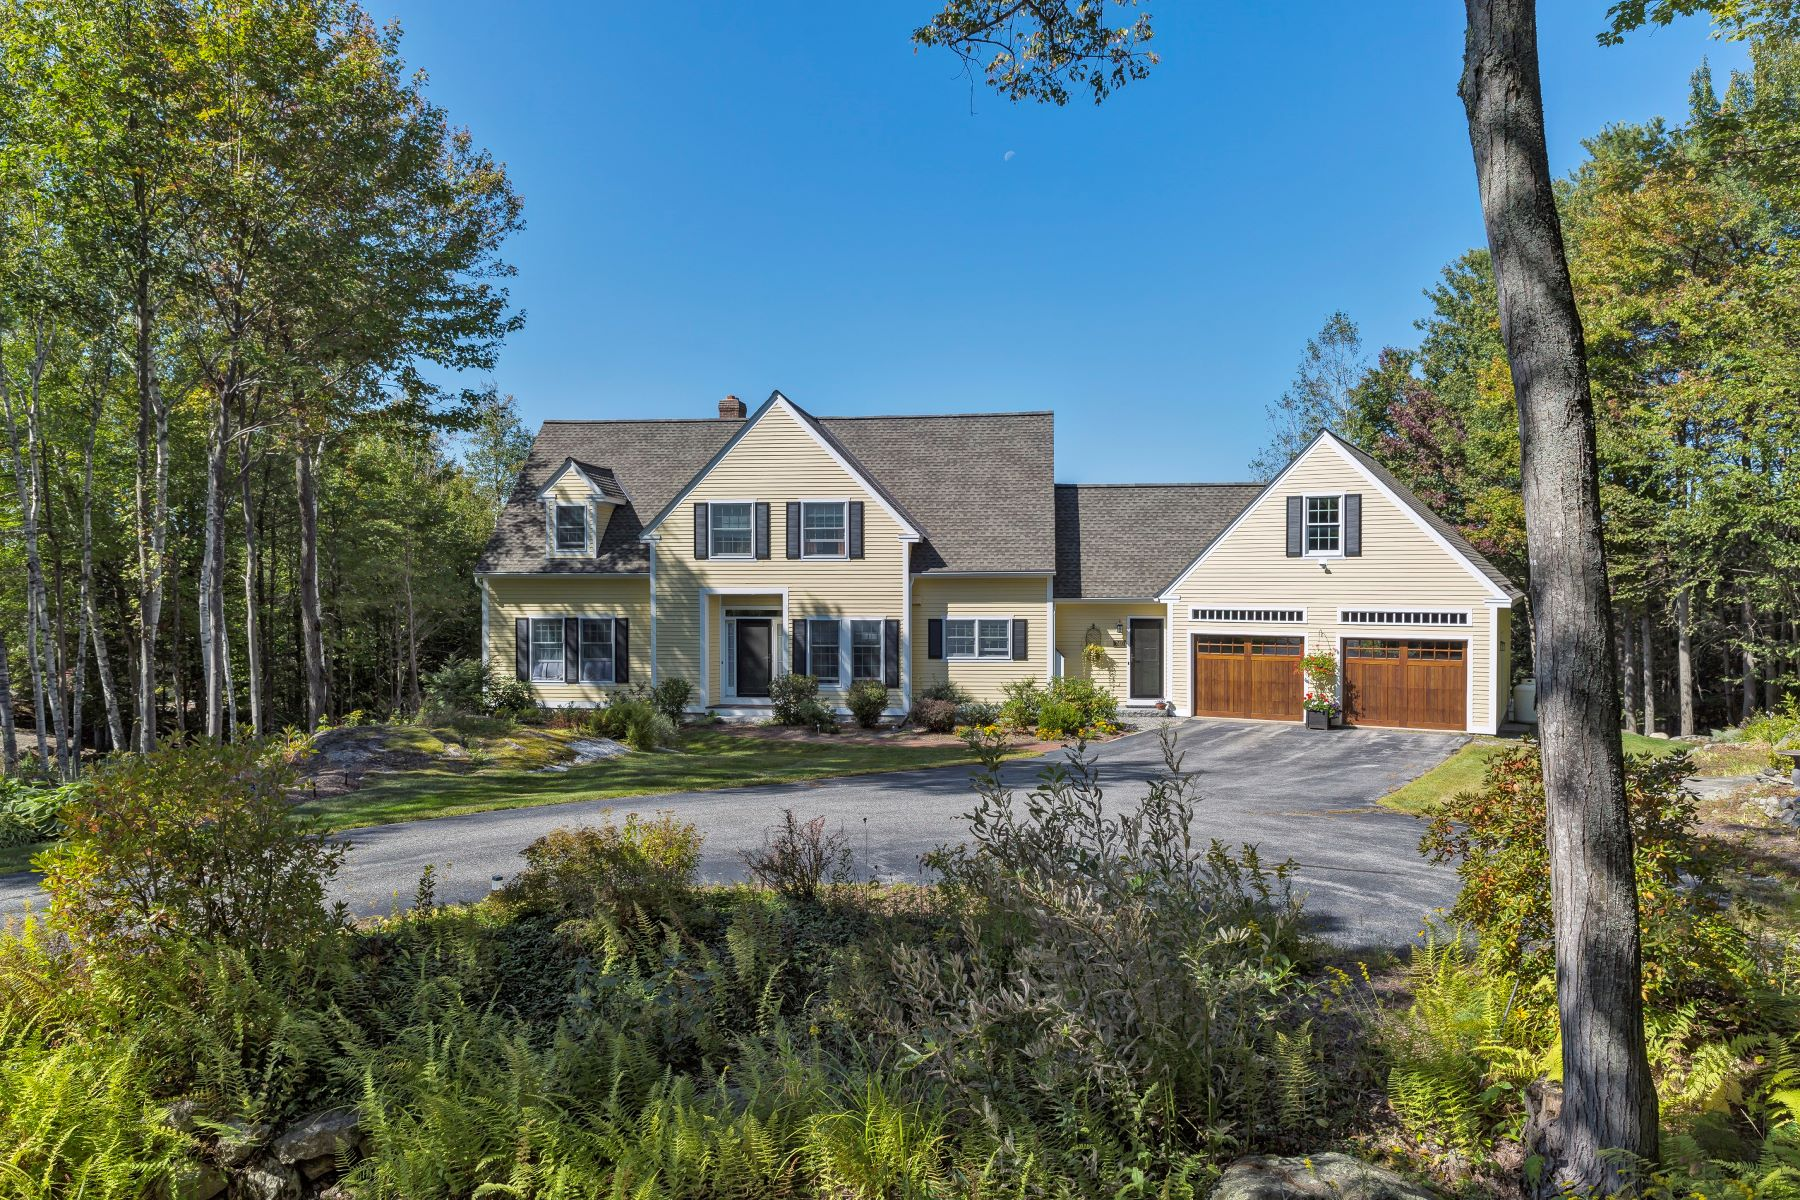 Single Family Homes for Active at 240 Woodland Trace, New London 240 Woodland Trace New London, New Hampshire 03257 United States